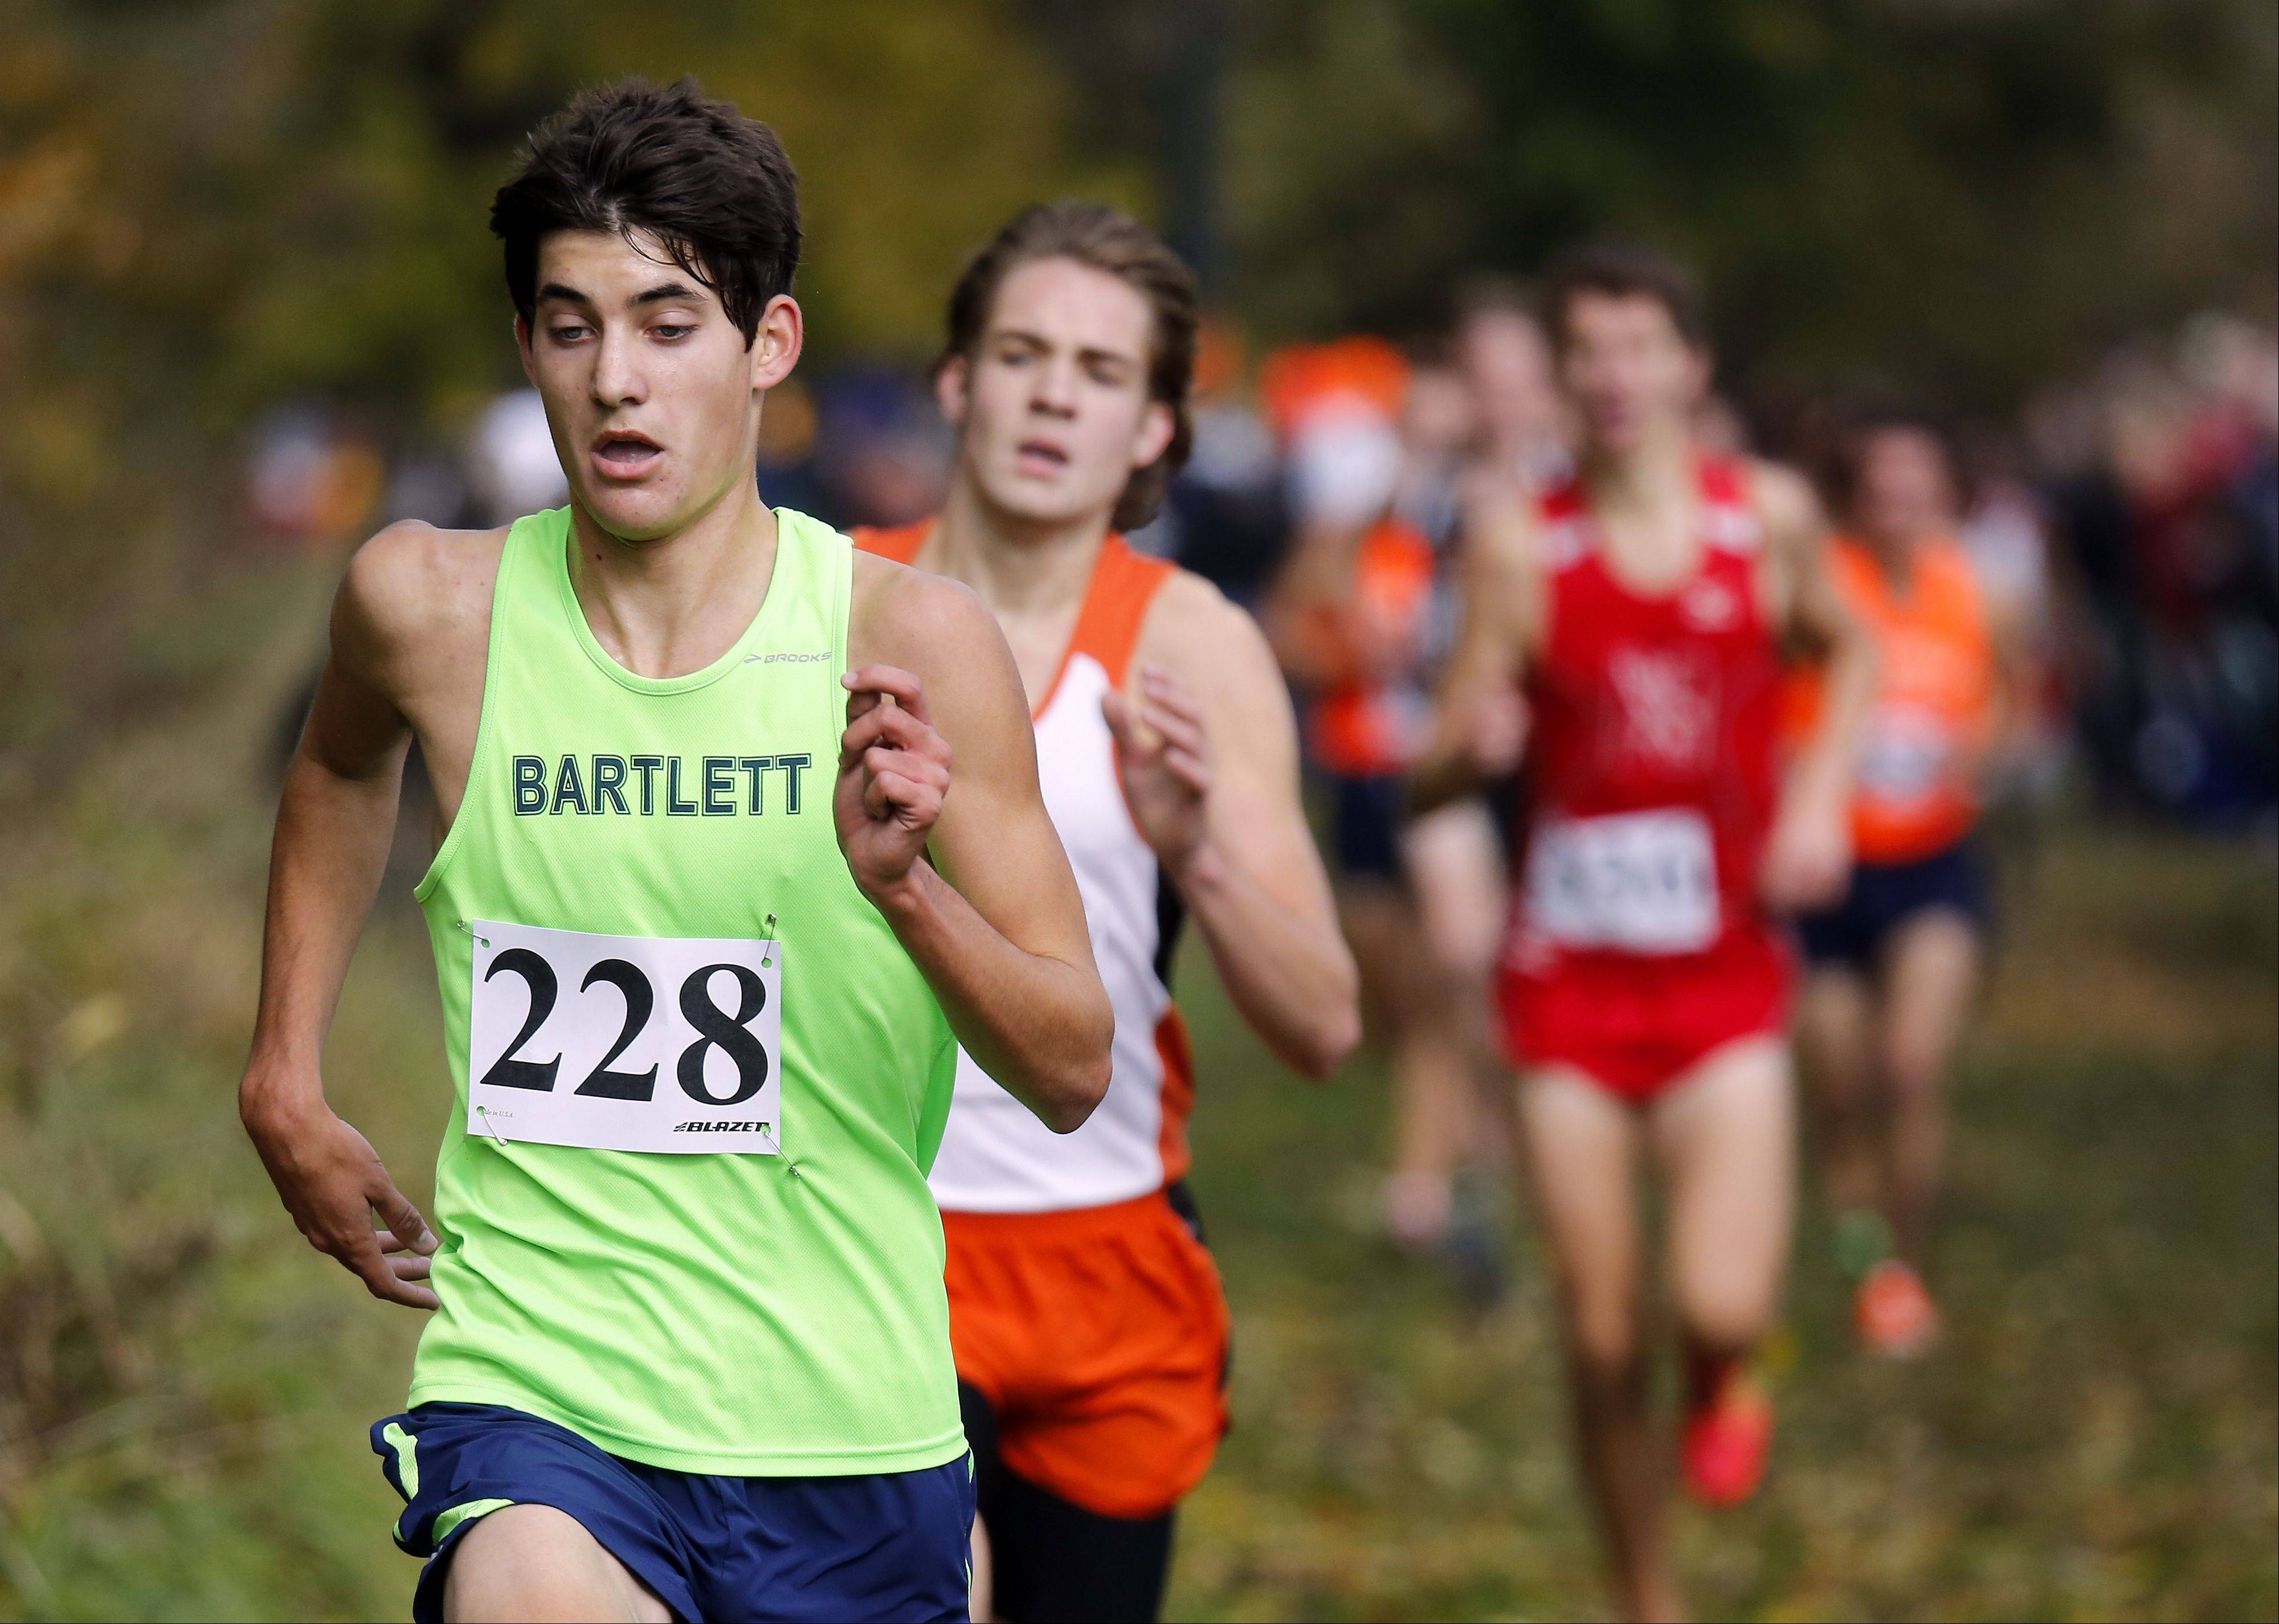 Bartlett's Dan Cotton heads to sixth during the Waubonsie Valley boys cross country Sectional in Aurora.